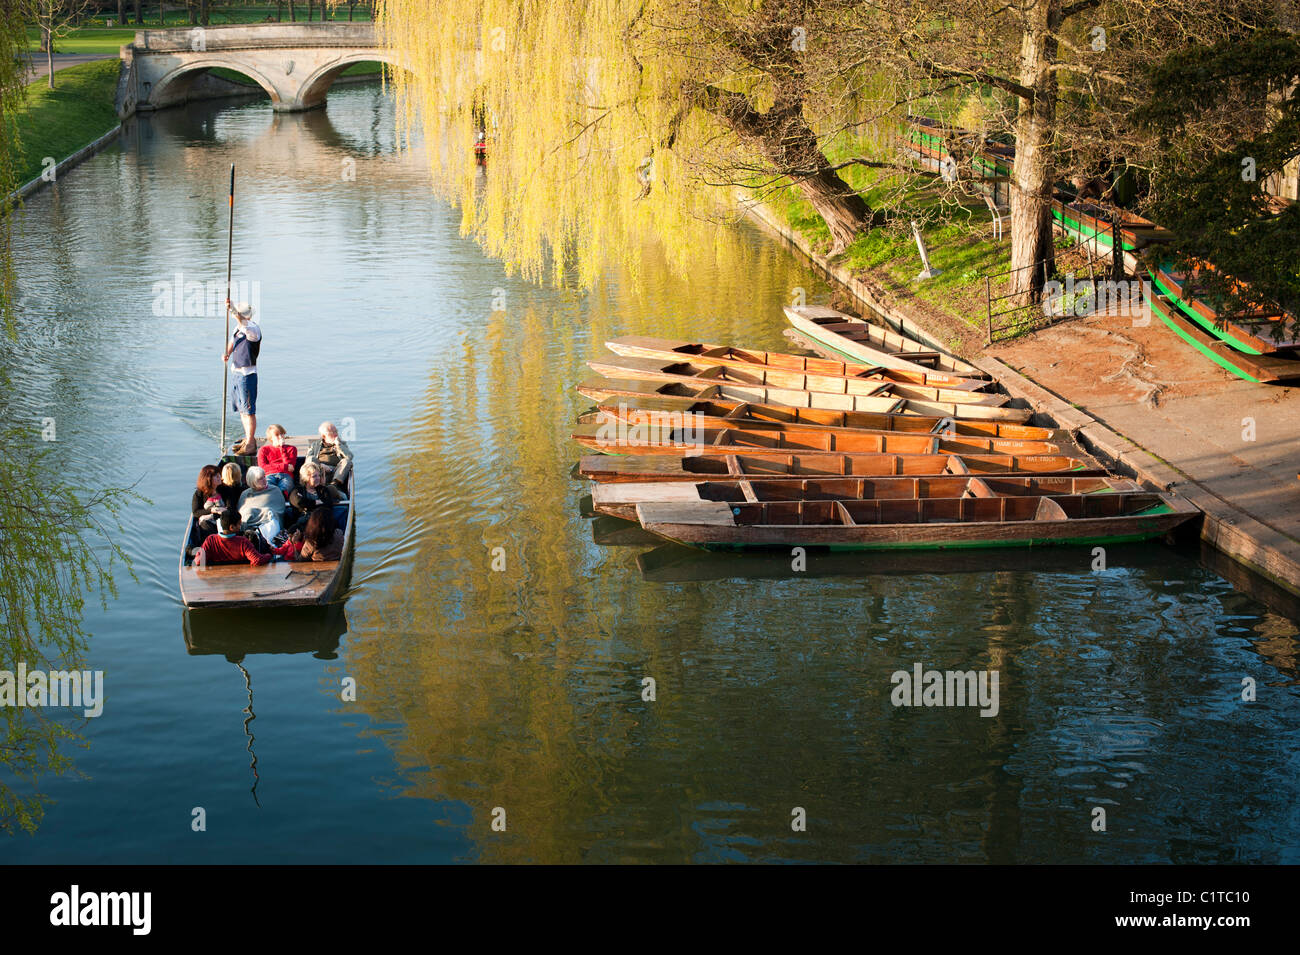 Punts on the River Cam, Cambridge, England, UK. Beautiful late afternoon spring sunshine. Stock Photo